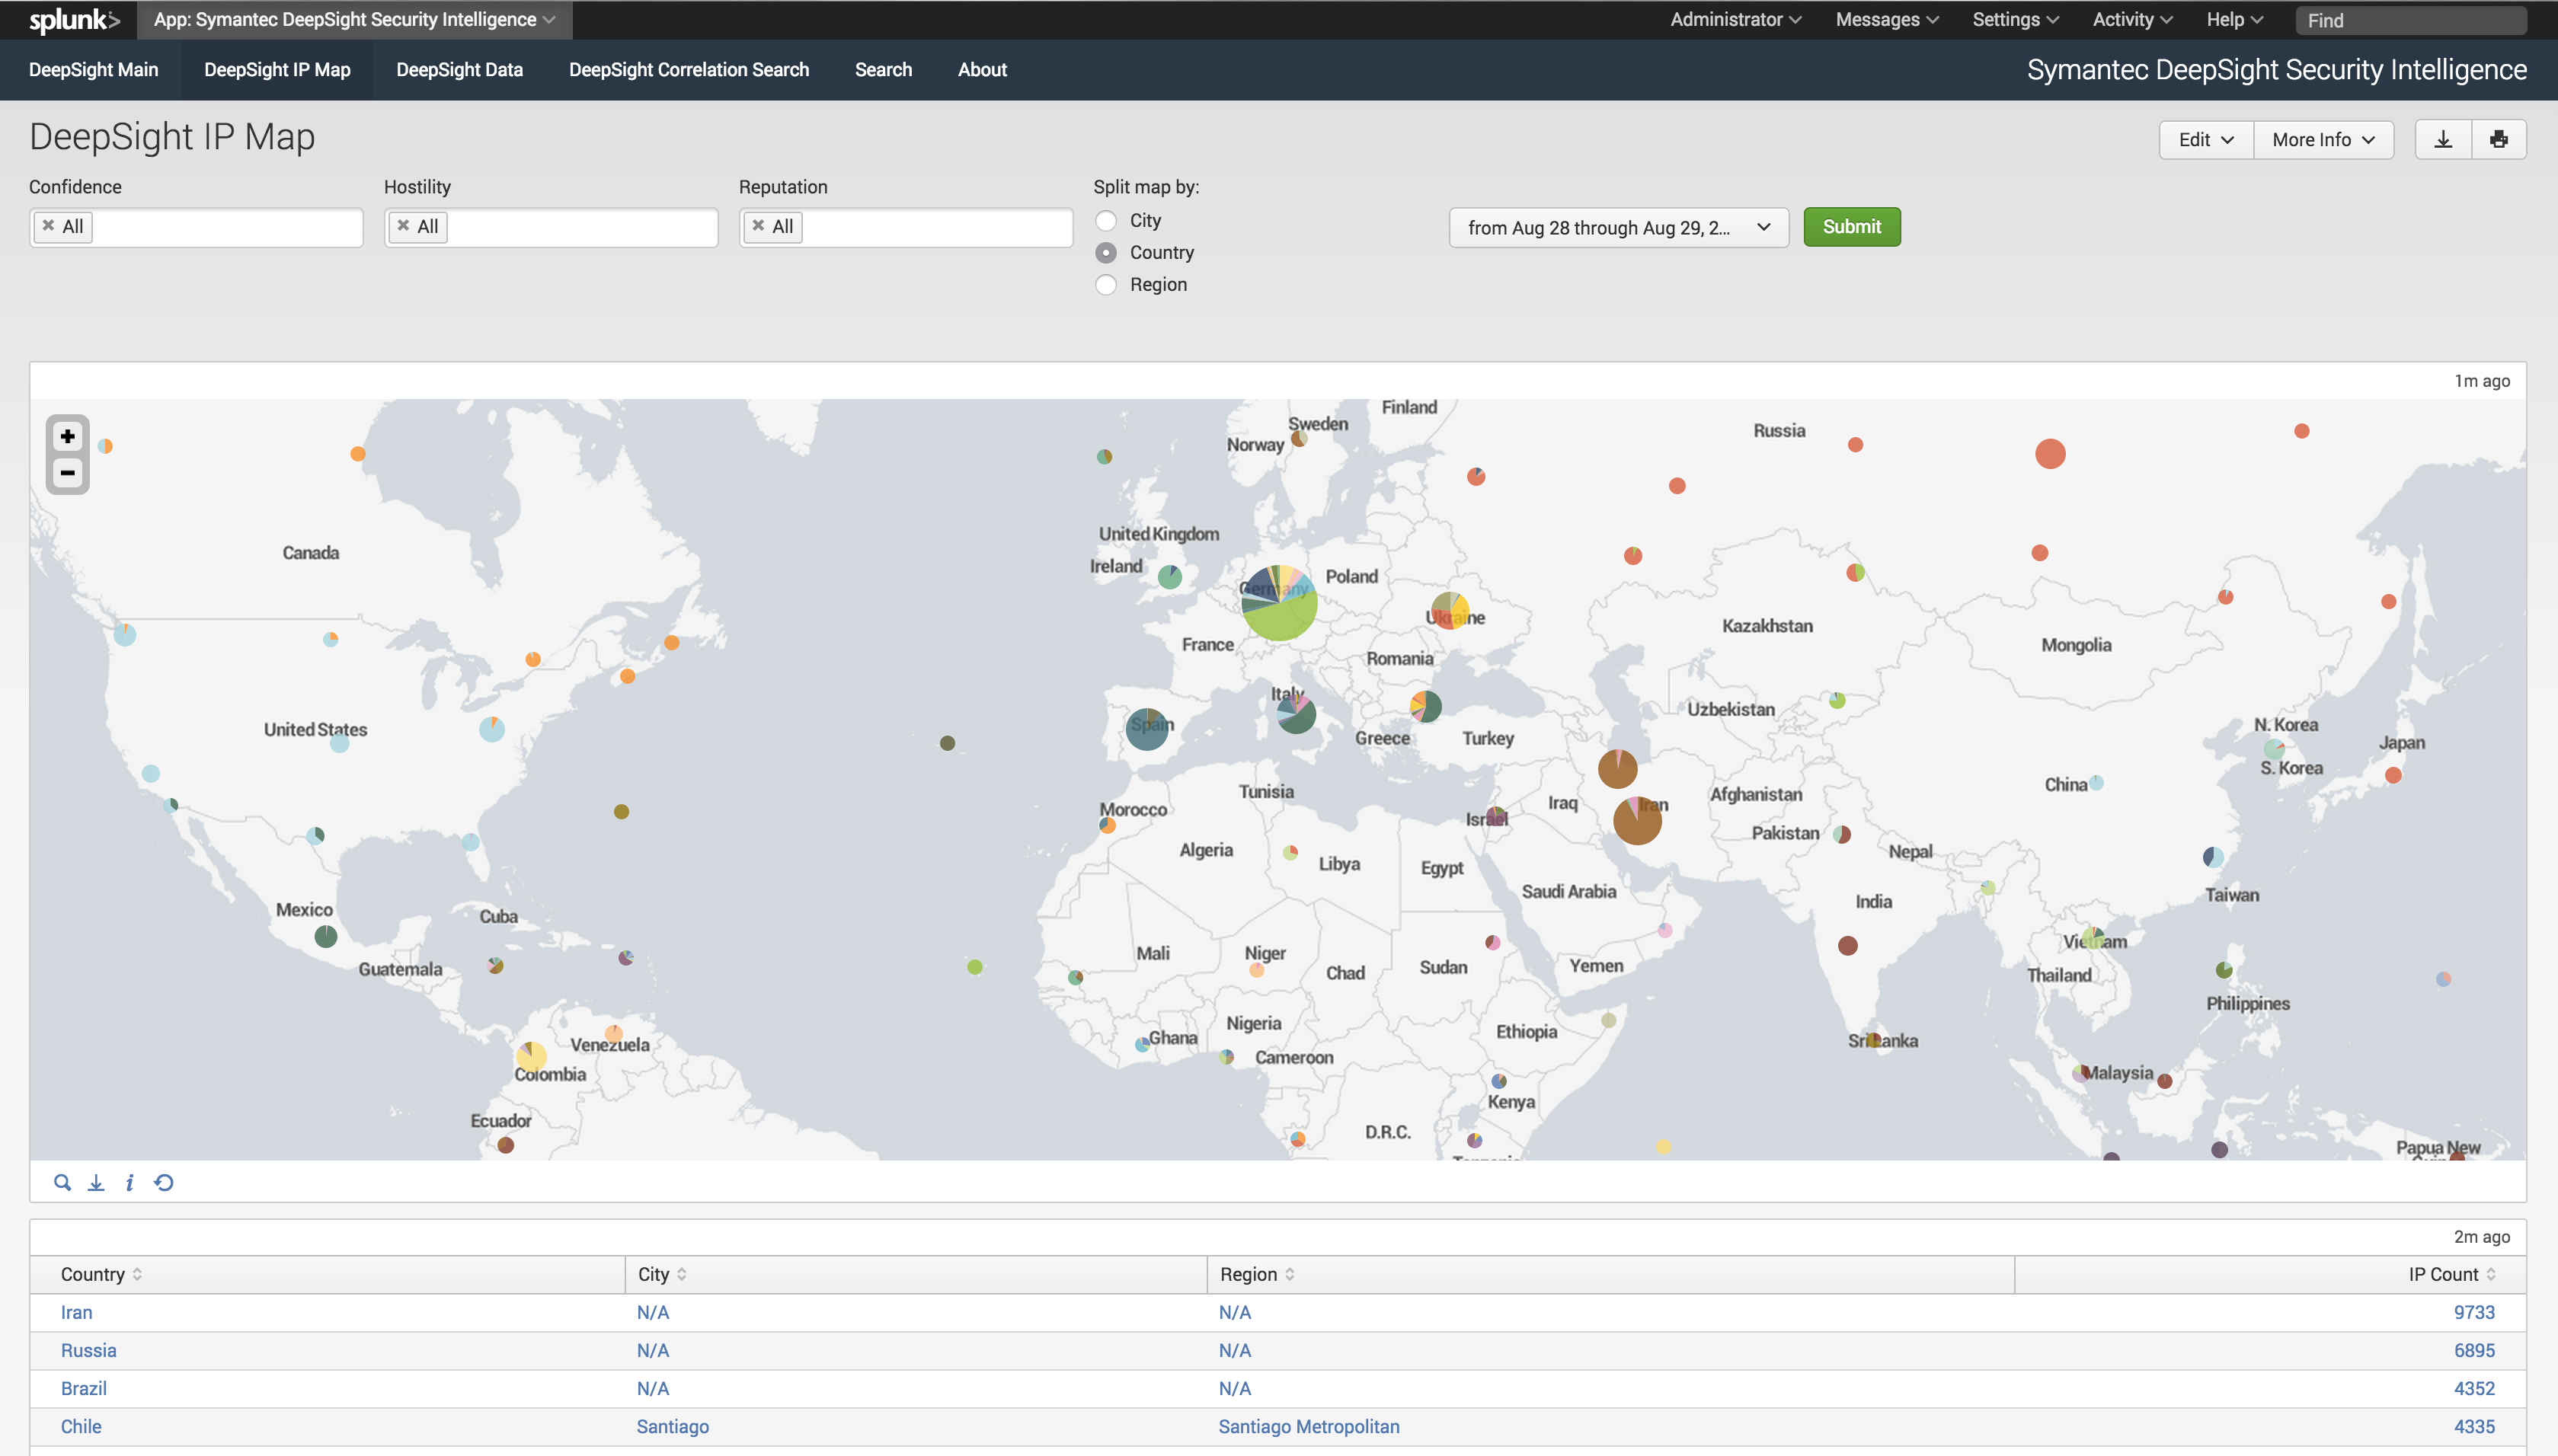 how to bring splunk data to monitor in splunk